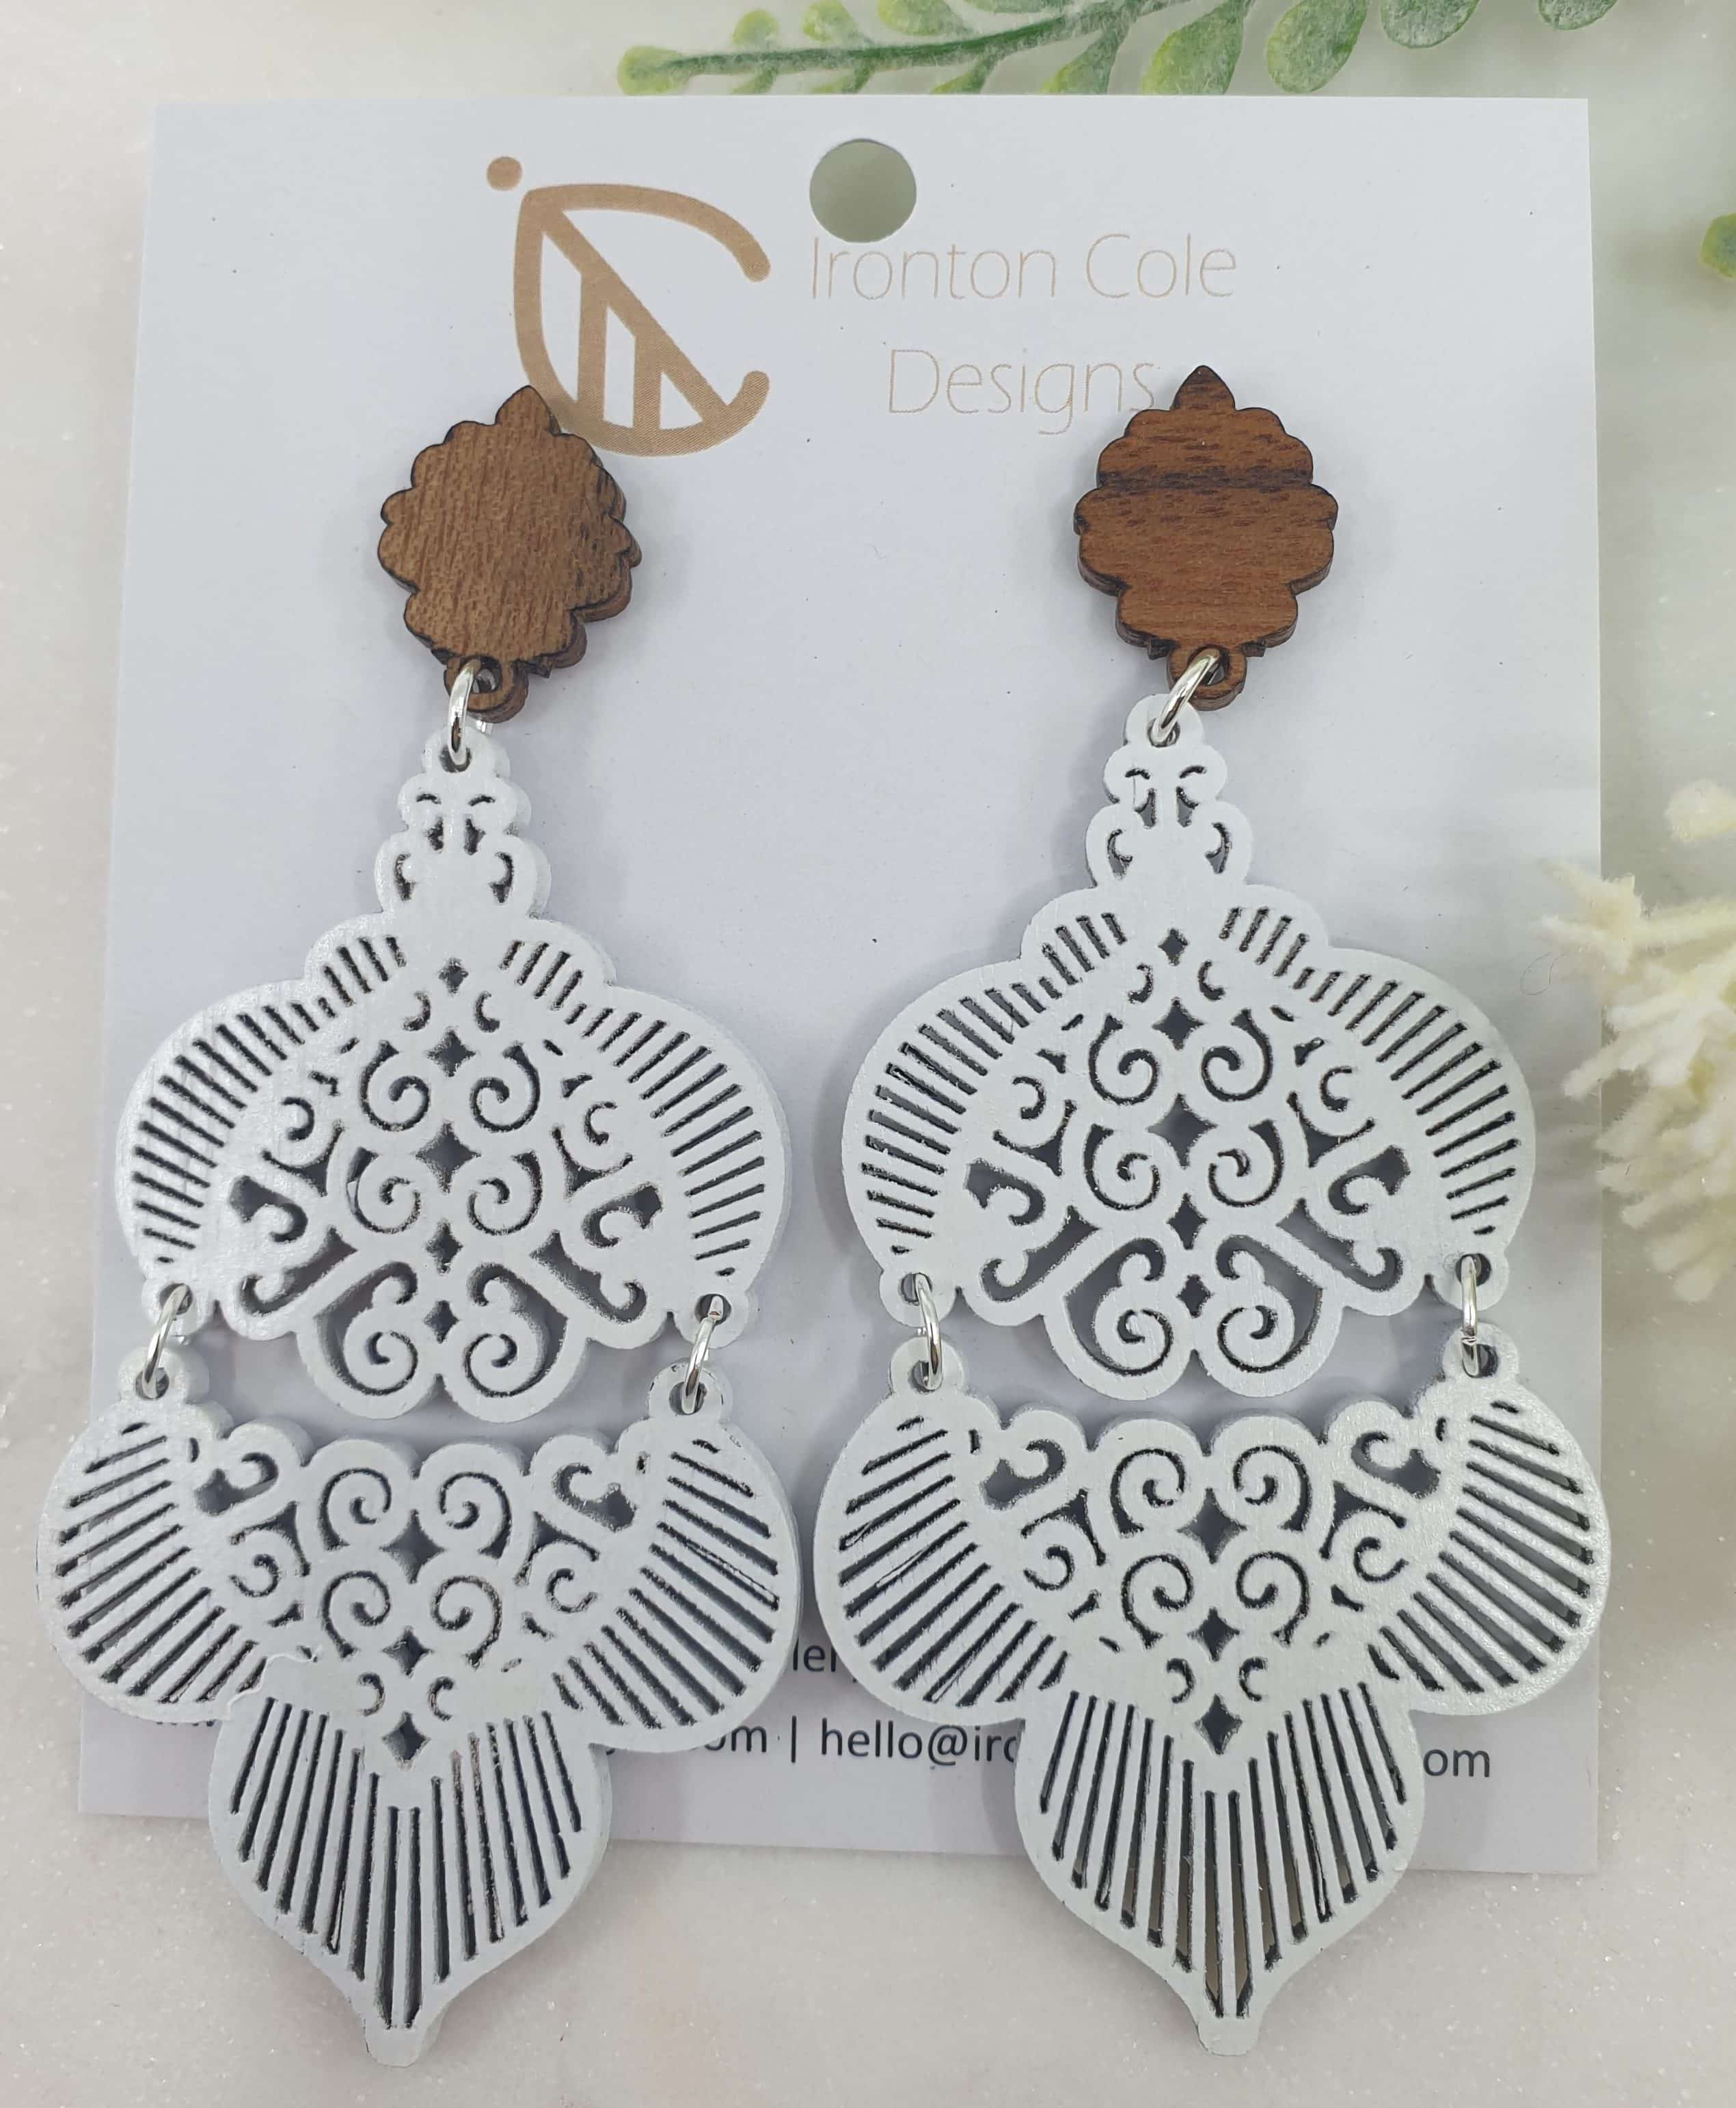 Moroccan inspired patterned earrings